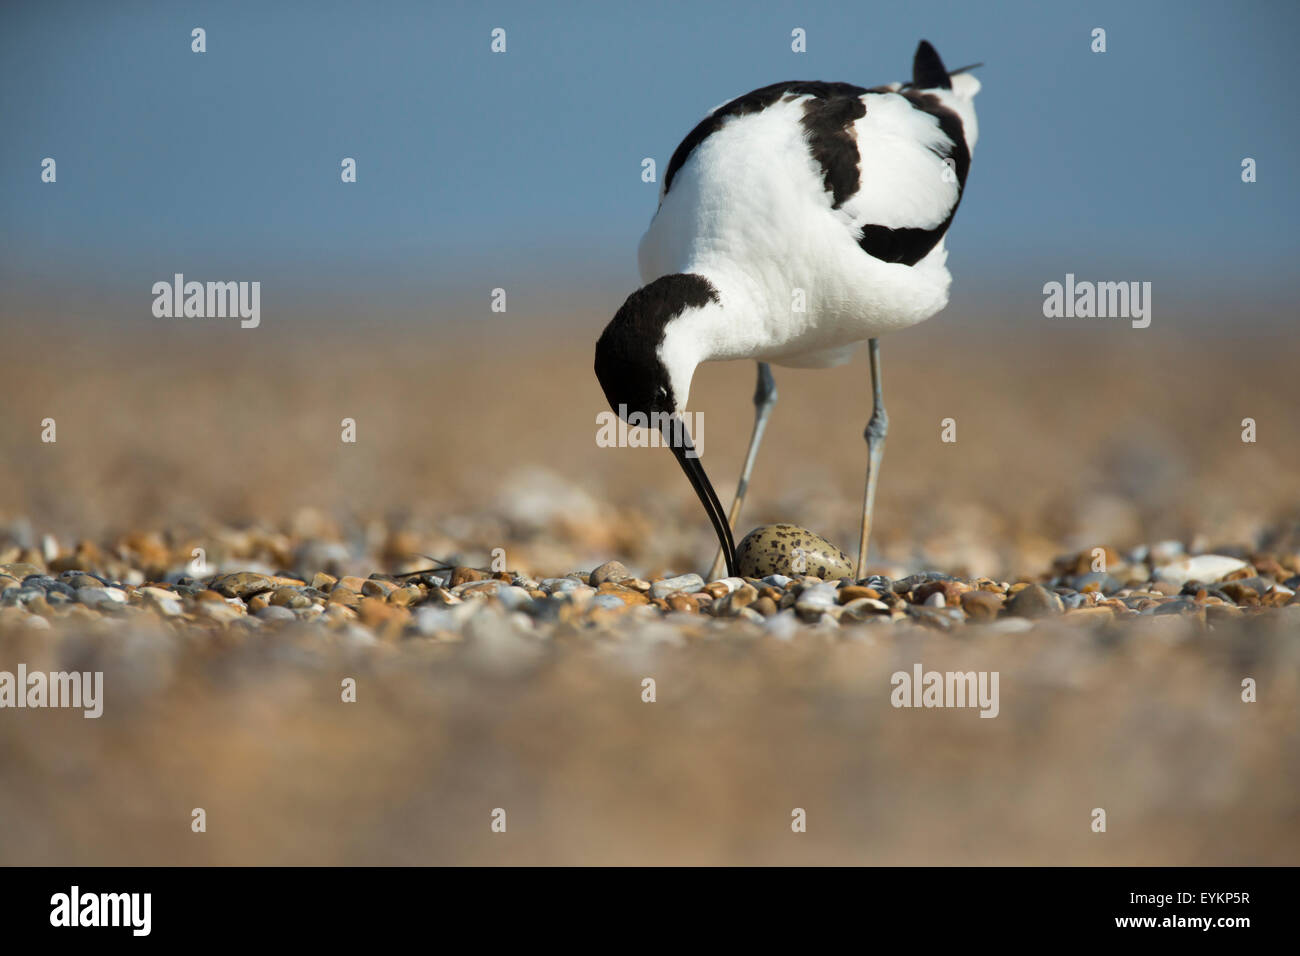 Avocet (Recurvirostra avosetta) incubating its eggs in its nest - Stock Image